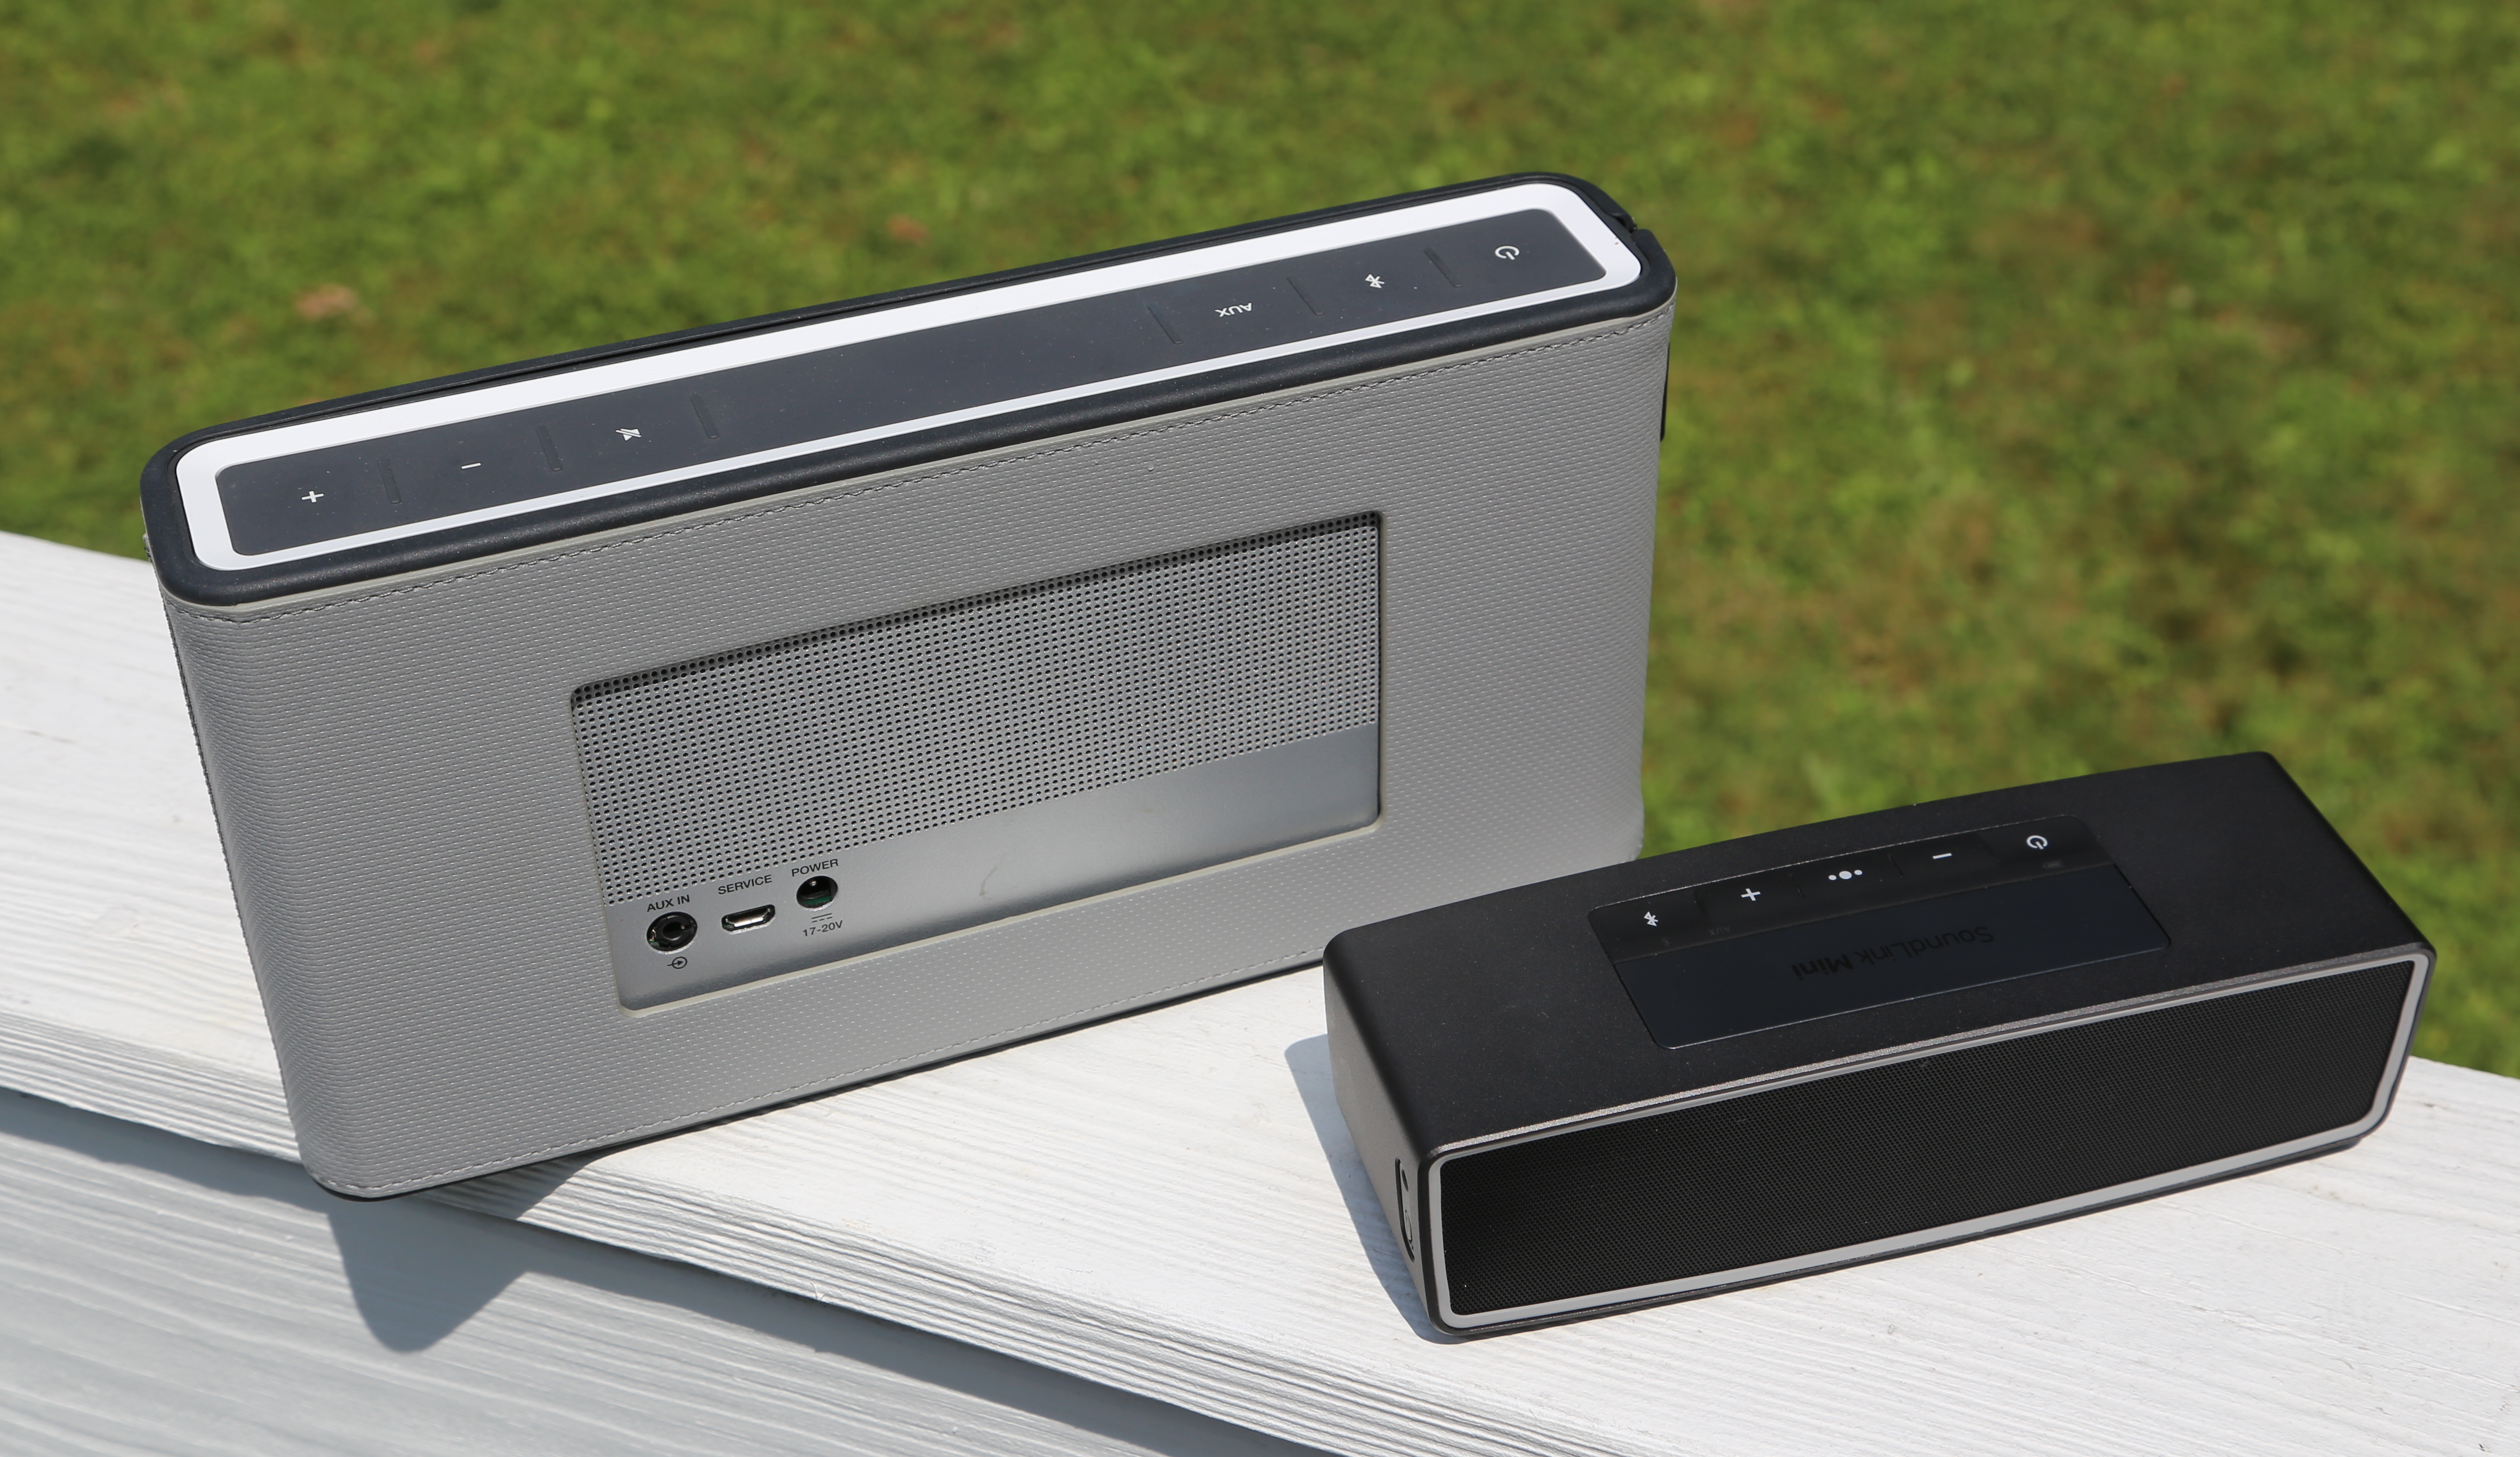 The Best Bluetooth Speakers 2015: JBL Charge 2+, Bose